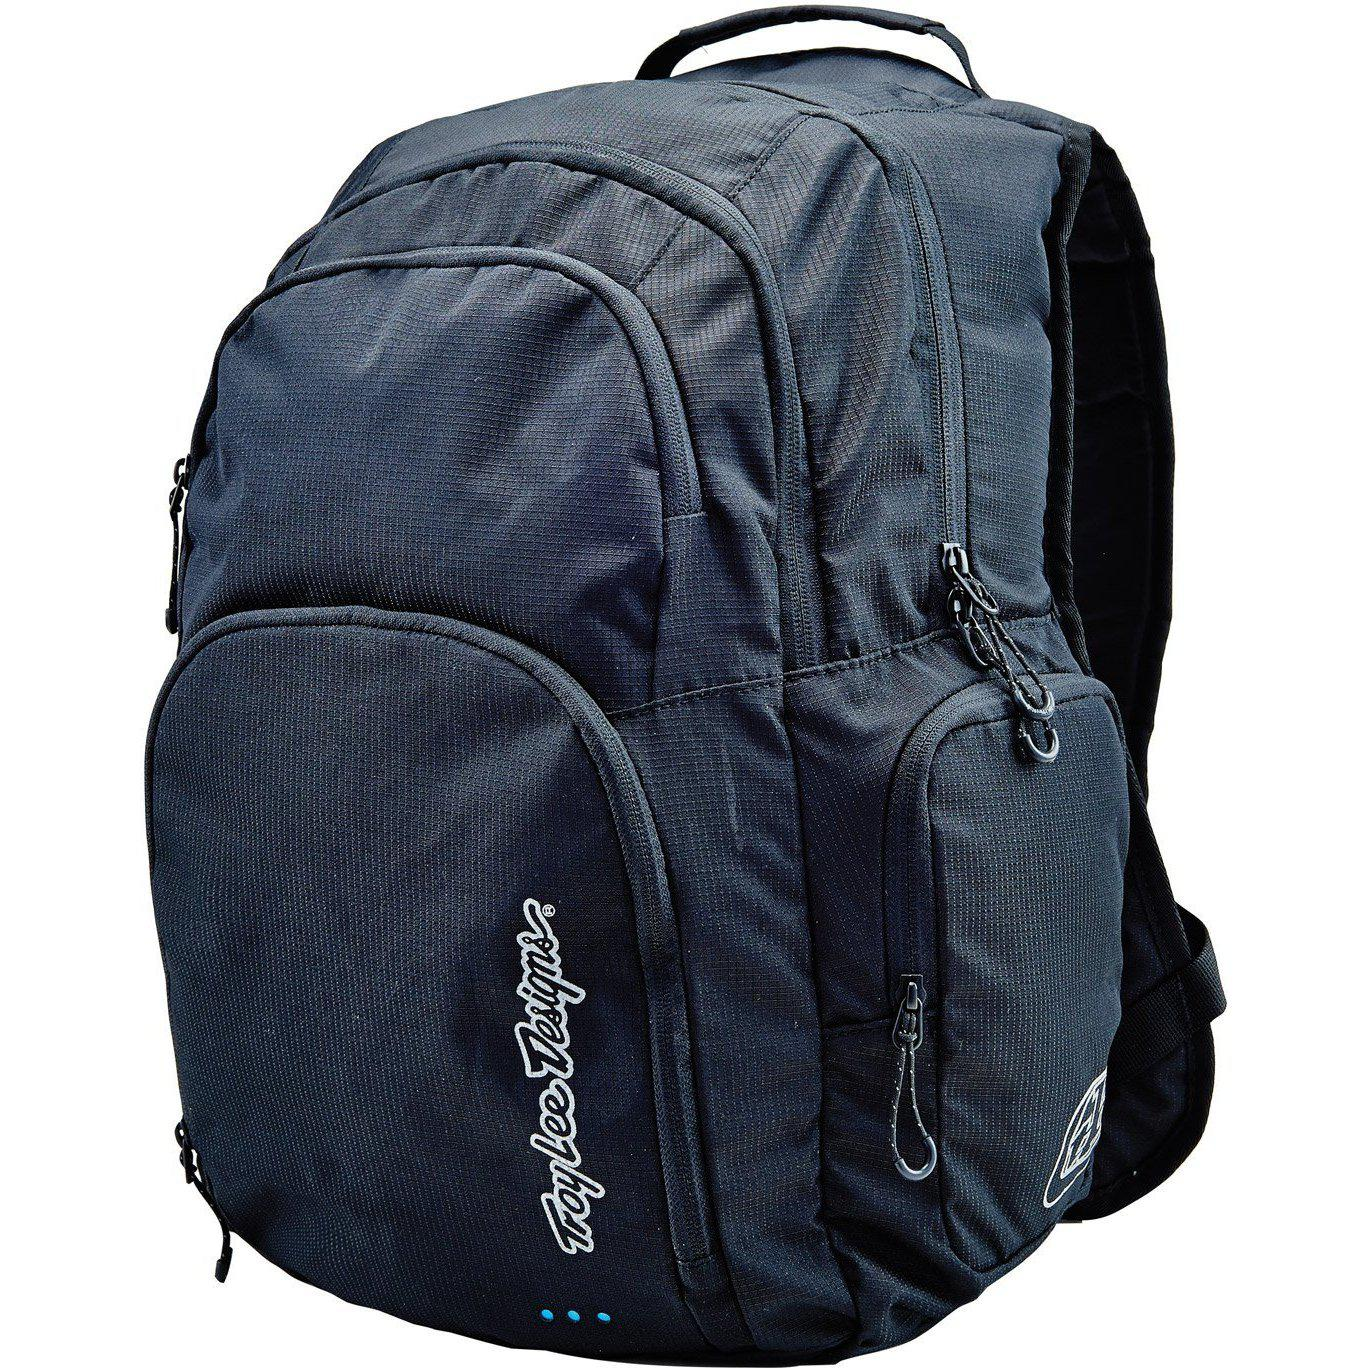 Troy Lee Designs-Troy Lee Designs Genesis Backpack-BLACK-Uni-TLD608003200-saddleback-elite-performance-cycling